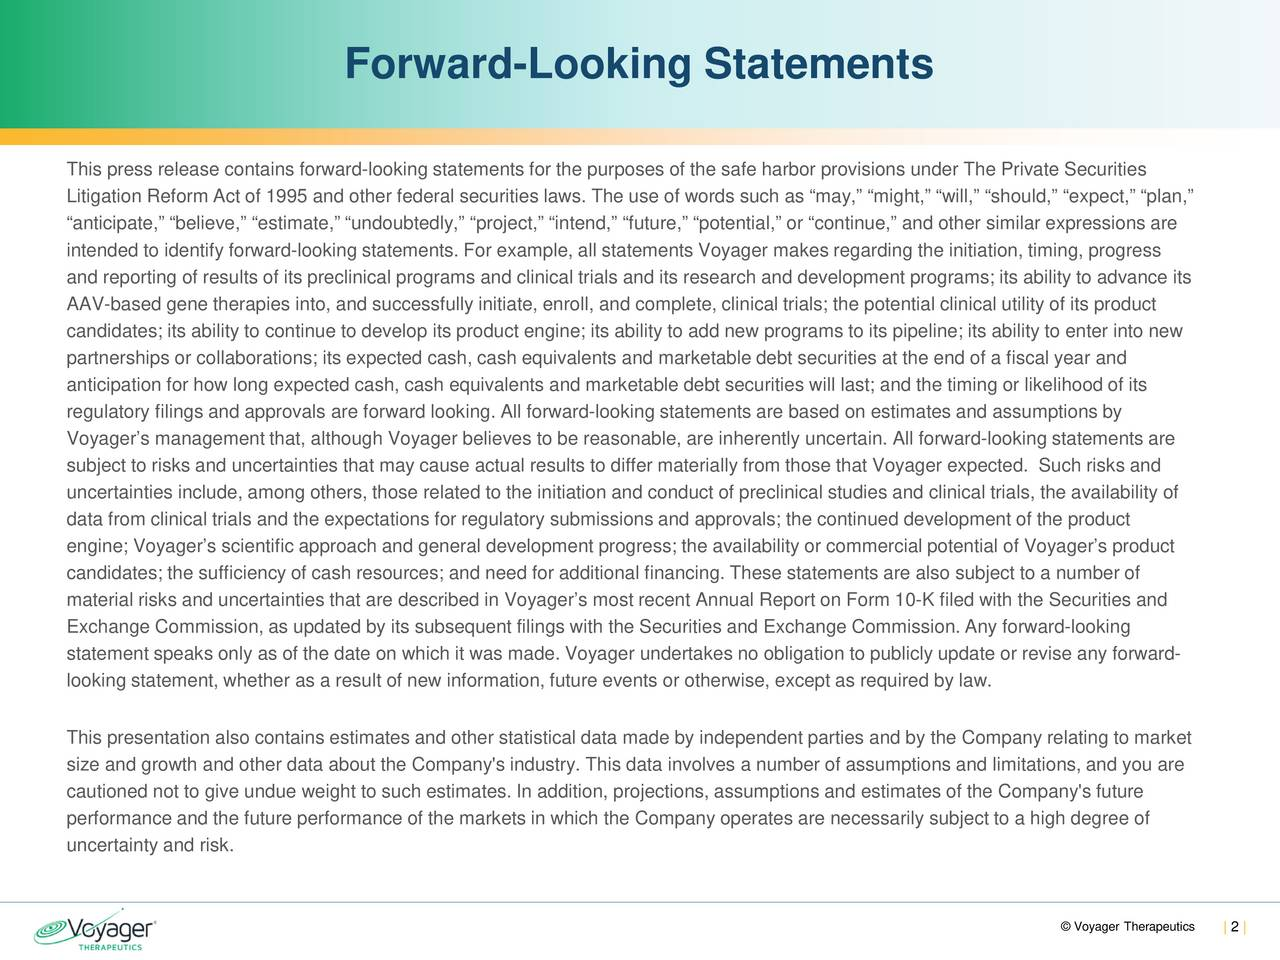 This press release contains forward-looking statements for the purposes of the safe harbor provisions under The Private Securities Litigation Reform Act of 1995 and other federal securities laws. The use of words such as may, might, will, should, expect, plan, anticipate, believe, estimate, undoubtedly, project, intend, future, potential, or continue, and other similar expressions are intended to identify forward-looking statements. For example, all statements Voyager makes regarding the initiation, timing, progress and reporting of results of its preclinical programs and clinical trials and its research and development programs; its ability to advance its AAV-based gene therapies into, and successfully initiate, enroll, and complete, clinical trials; the potential clinical utility of its product candidates; its ability to continue to develop its product engine; its ability to add new programs to its pipeline; its ability to enter into new partnerships or collaborations; its expected cash, cash equivalents and marketable debt securities at the end of a fiscal year and anticipation for how long expected cash, cash equivalents and marketable debt securities will last; and the timing or likelihoodof its regulatory filings and approvals are forward looking. All forward-looking statements are based on estimates and assumptions by Voyagers management that, although Voyager believes to be reasonable, are inherently uncertain. All forward-looking statements are subject to risks and uncertainties that may cause actual results to differ materially from those that Voyager expected. Suchrisks and uncertainties include, among others, those related to the initiation and conduct of preclinical studies and clinical trials,the availability of data from clinical trials and the expectations for regulatory submissions and approvals; the continued development of the product engine; Voyagers scientific approach and general development progress; the availability or commercial potential of